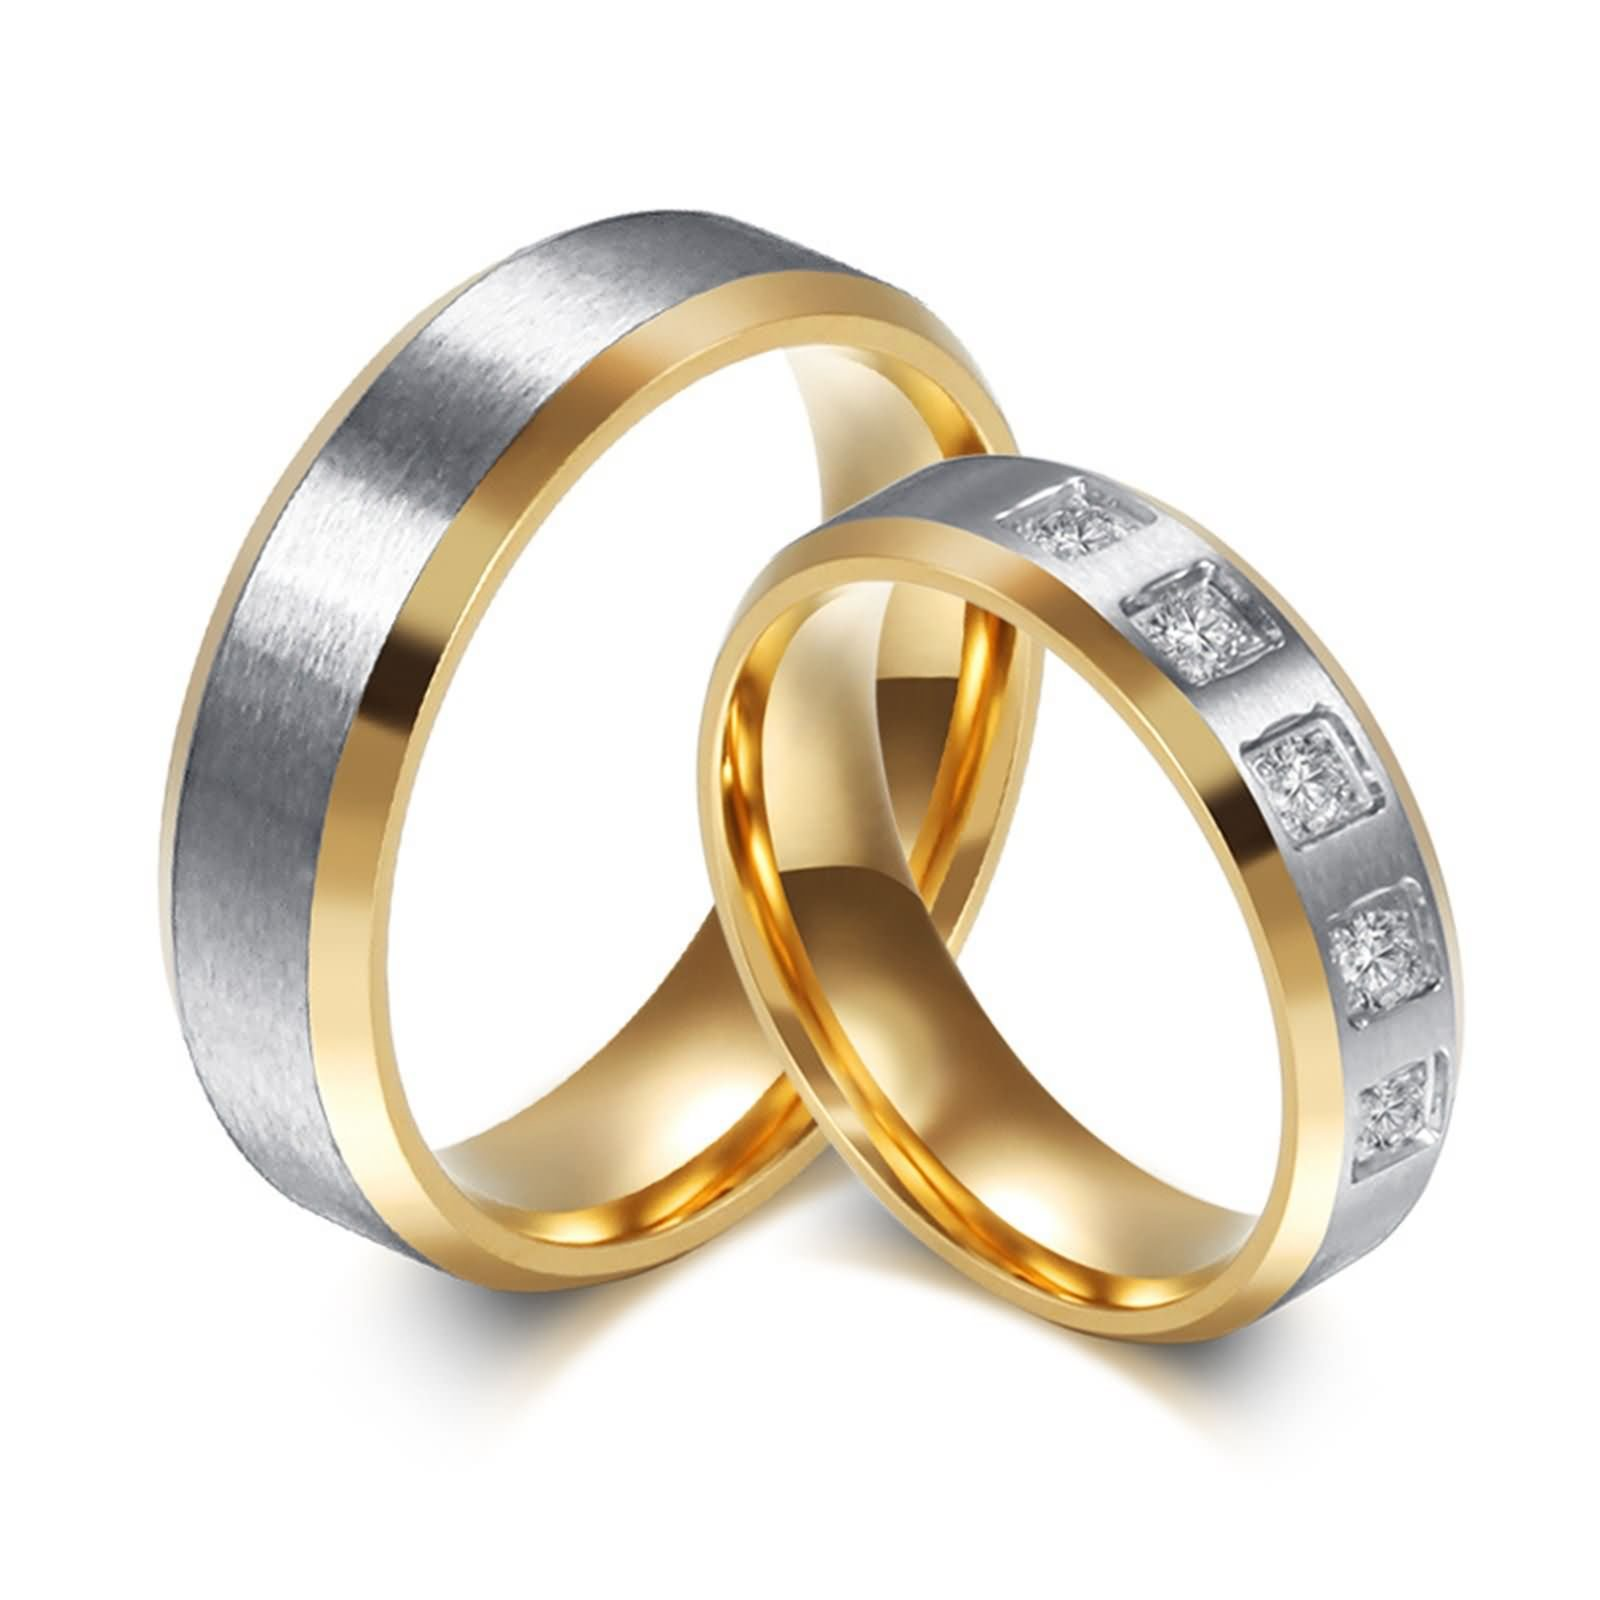 Rings for Wedding Set His and Her Gold Stainless Steel Ring Set for Women Brush CZ Size 5 & Men Size 12